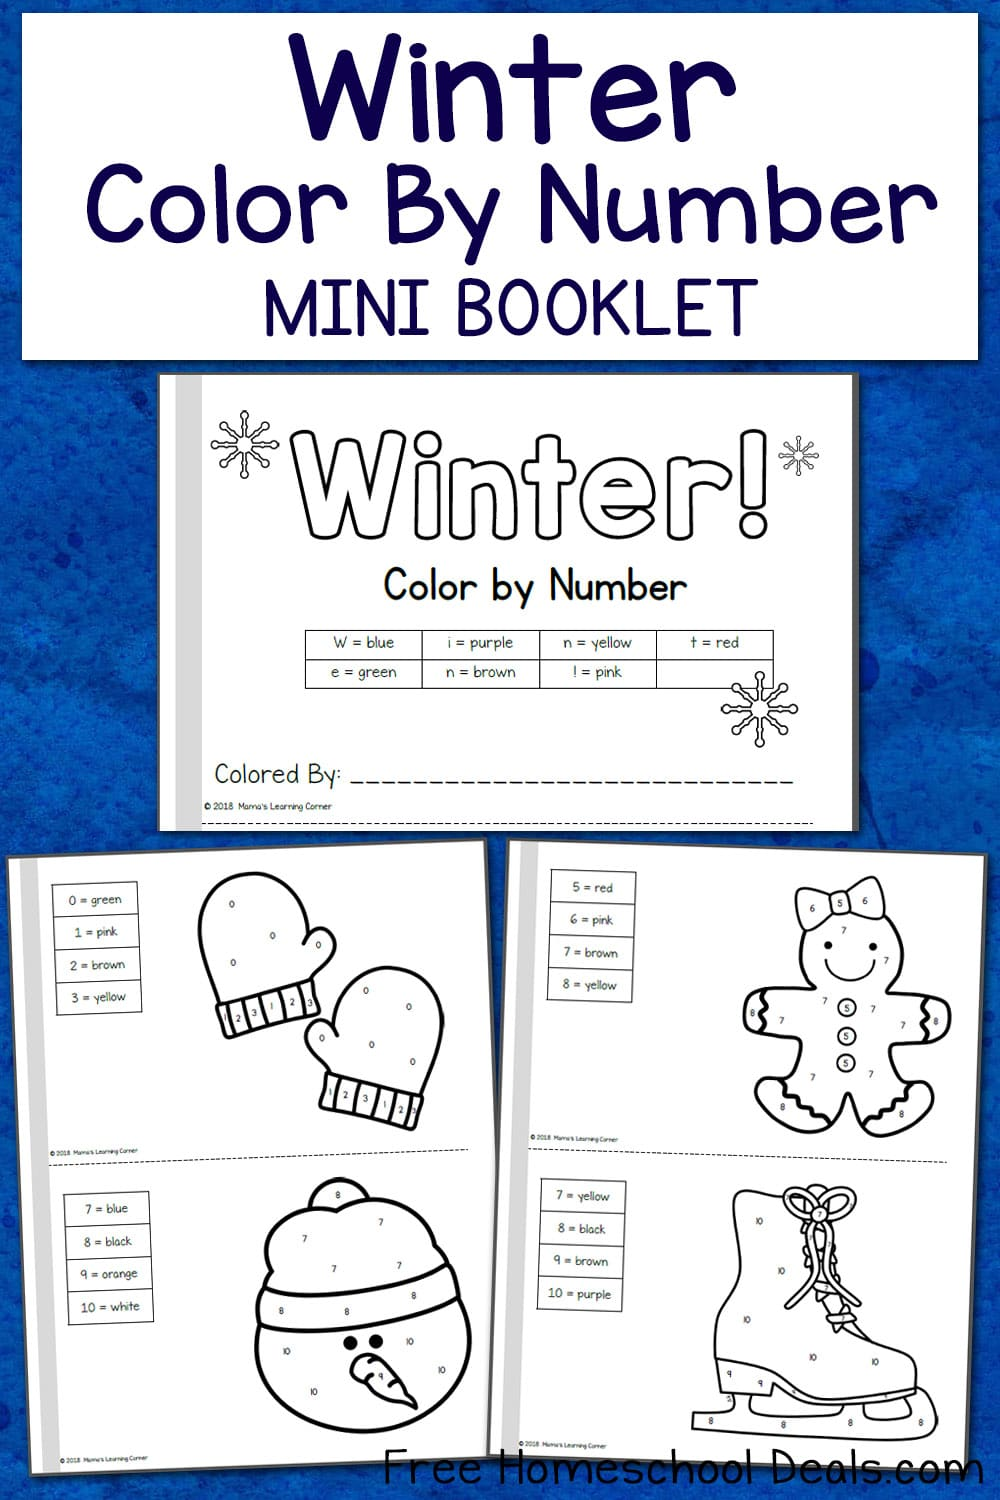 FREE WINTER COLOR BY NUMBER MINI BOOK (Instant Download)